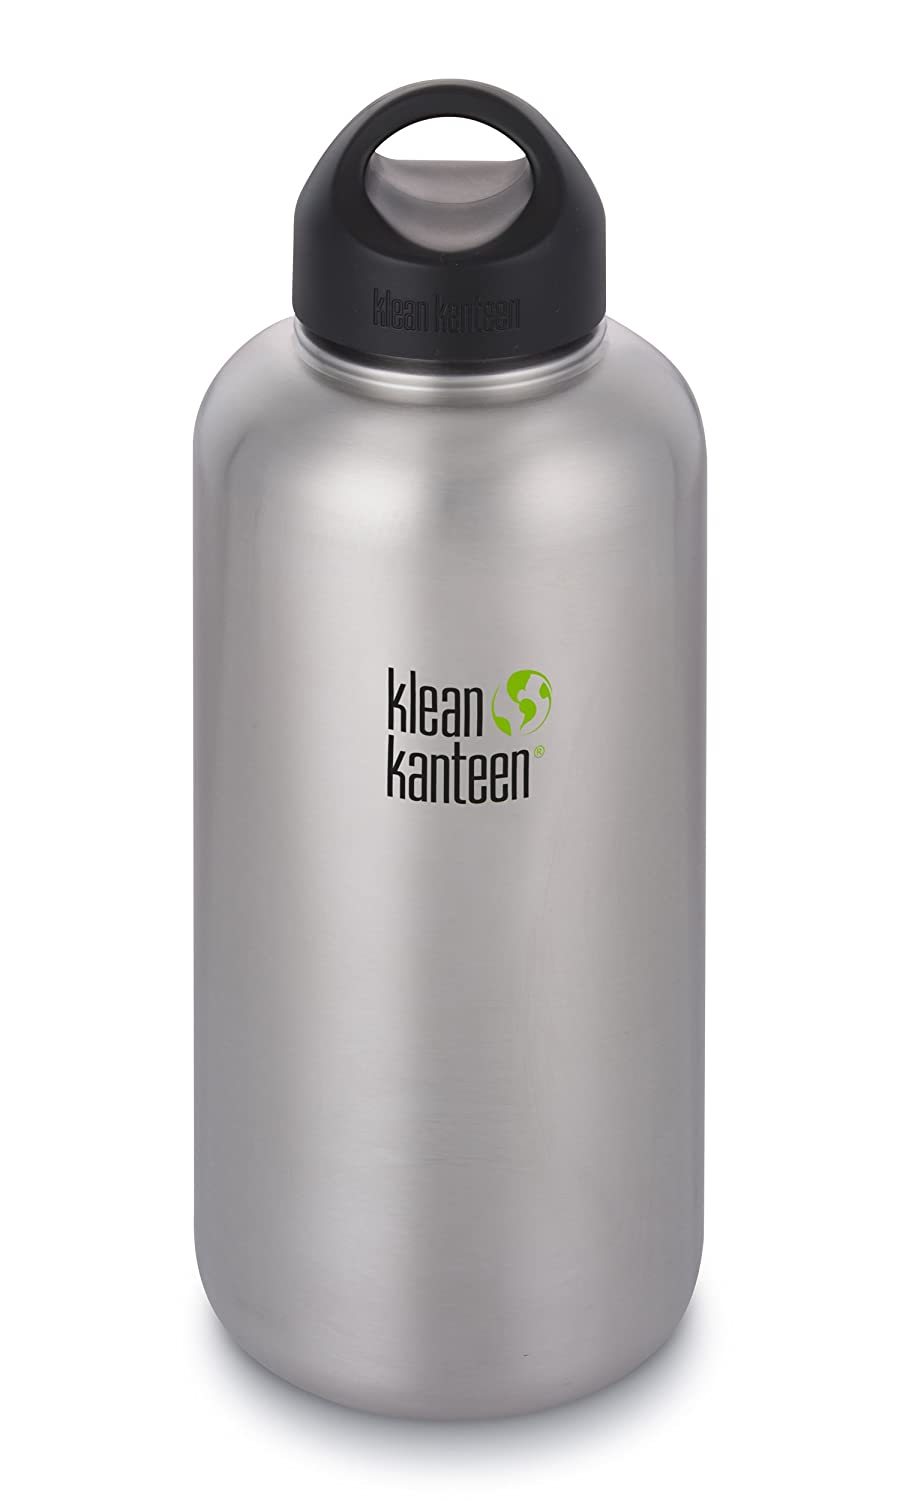 Klean Kanteen Wide Mouth Single Wall Stainless Steel Water Bottle with Leak Proof Stainless Steel Interior Cap - 64oz - Brushed Stainless